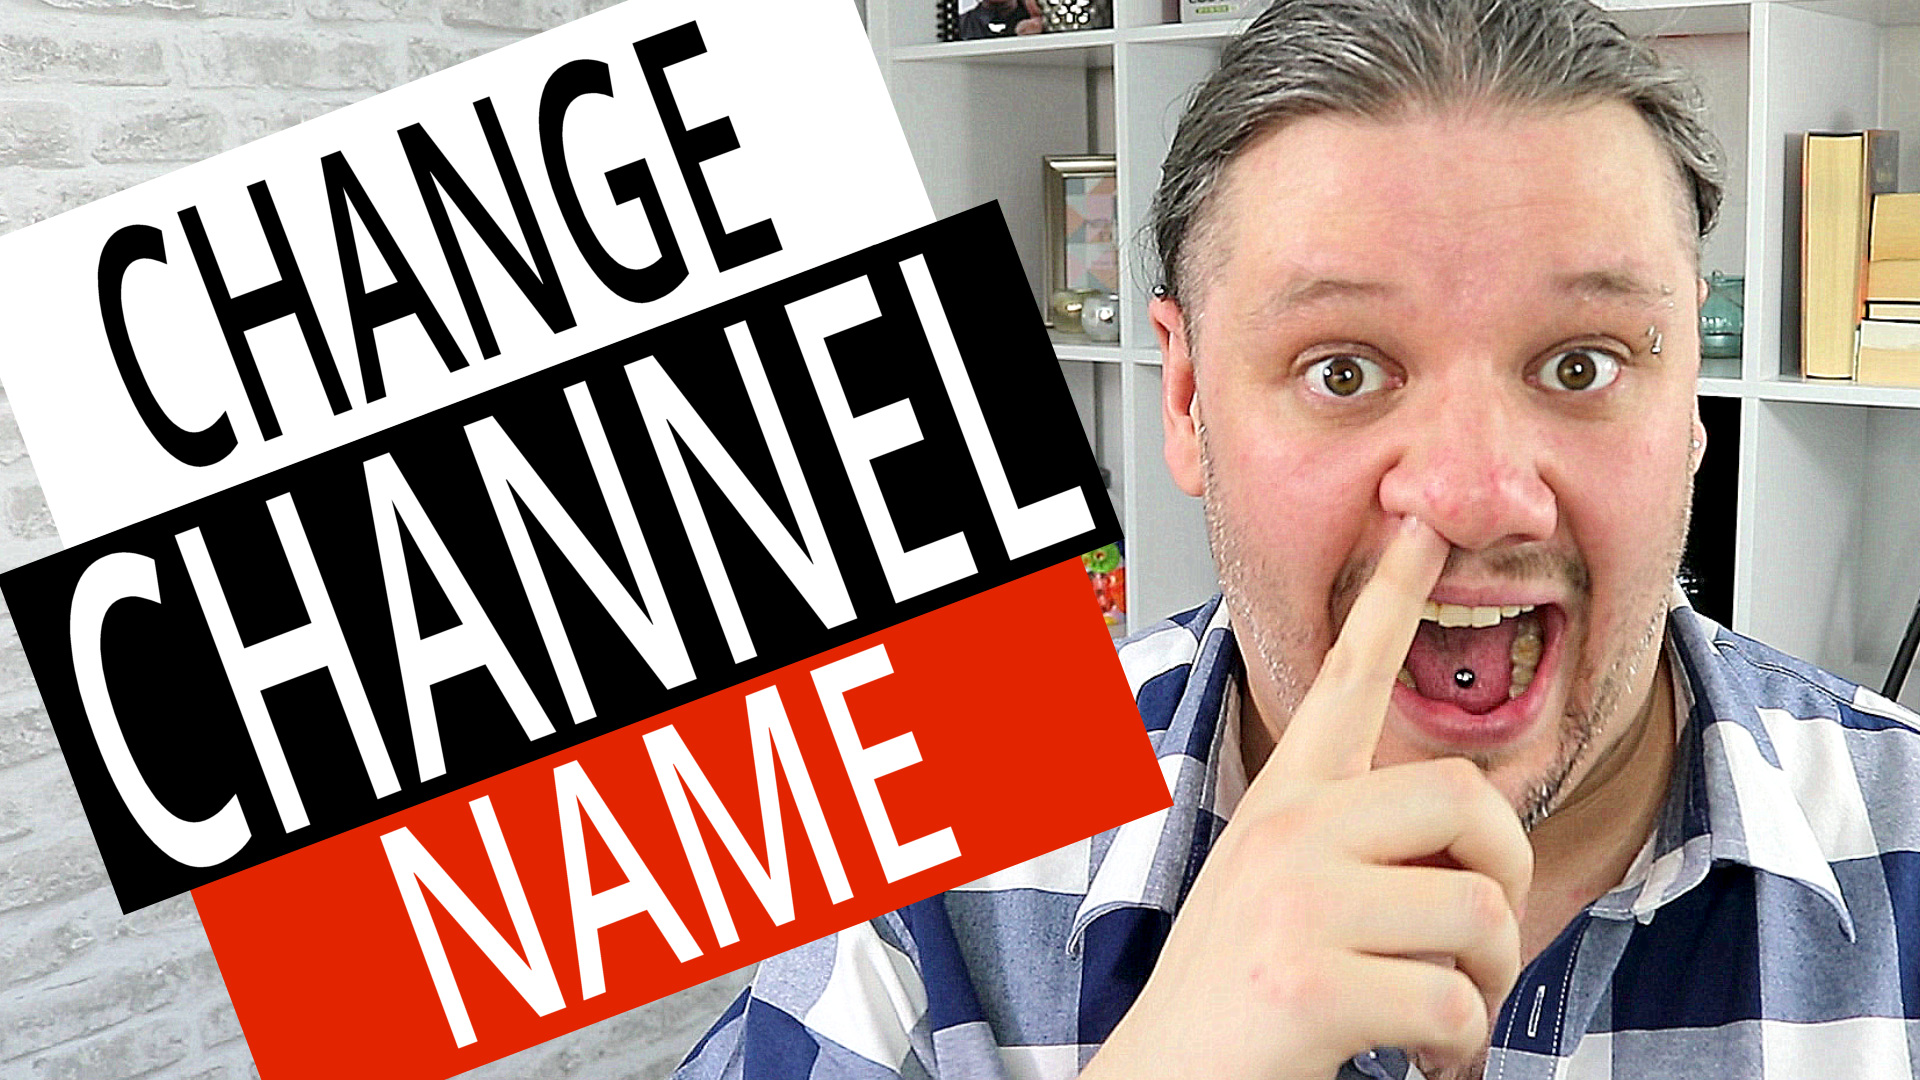 How To Change Channel Name with NEW YouTube Studio 2019, alan spicer,how to change youtube channel name,how to change your youtube username,how to change your youtube name,how to change youtube name 2019,how to change channel name on youtube,change youtube channel name,how to change your youtube channel name,change youtube username,change youtube name,change channel name 2019,change channel name with new youtube studio,change name,channel name,youtube studio change channel name,change username,youtube channel name